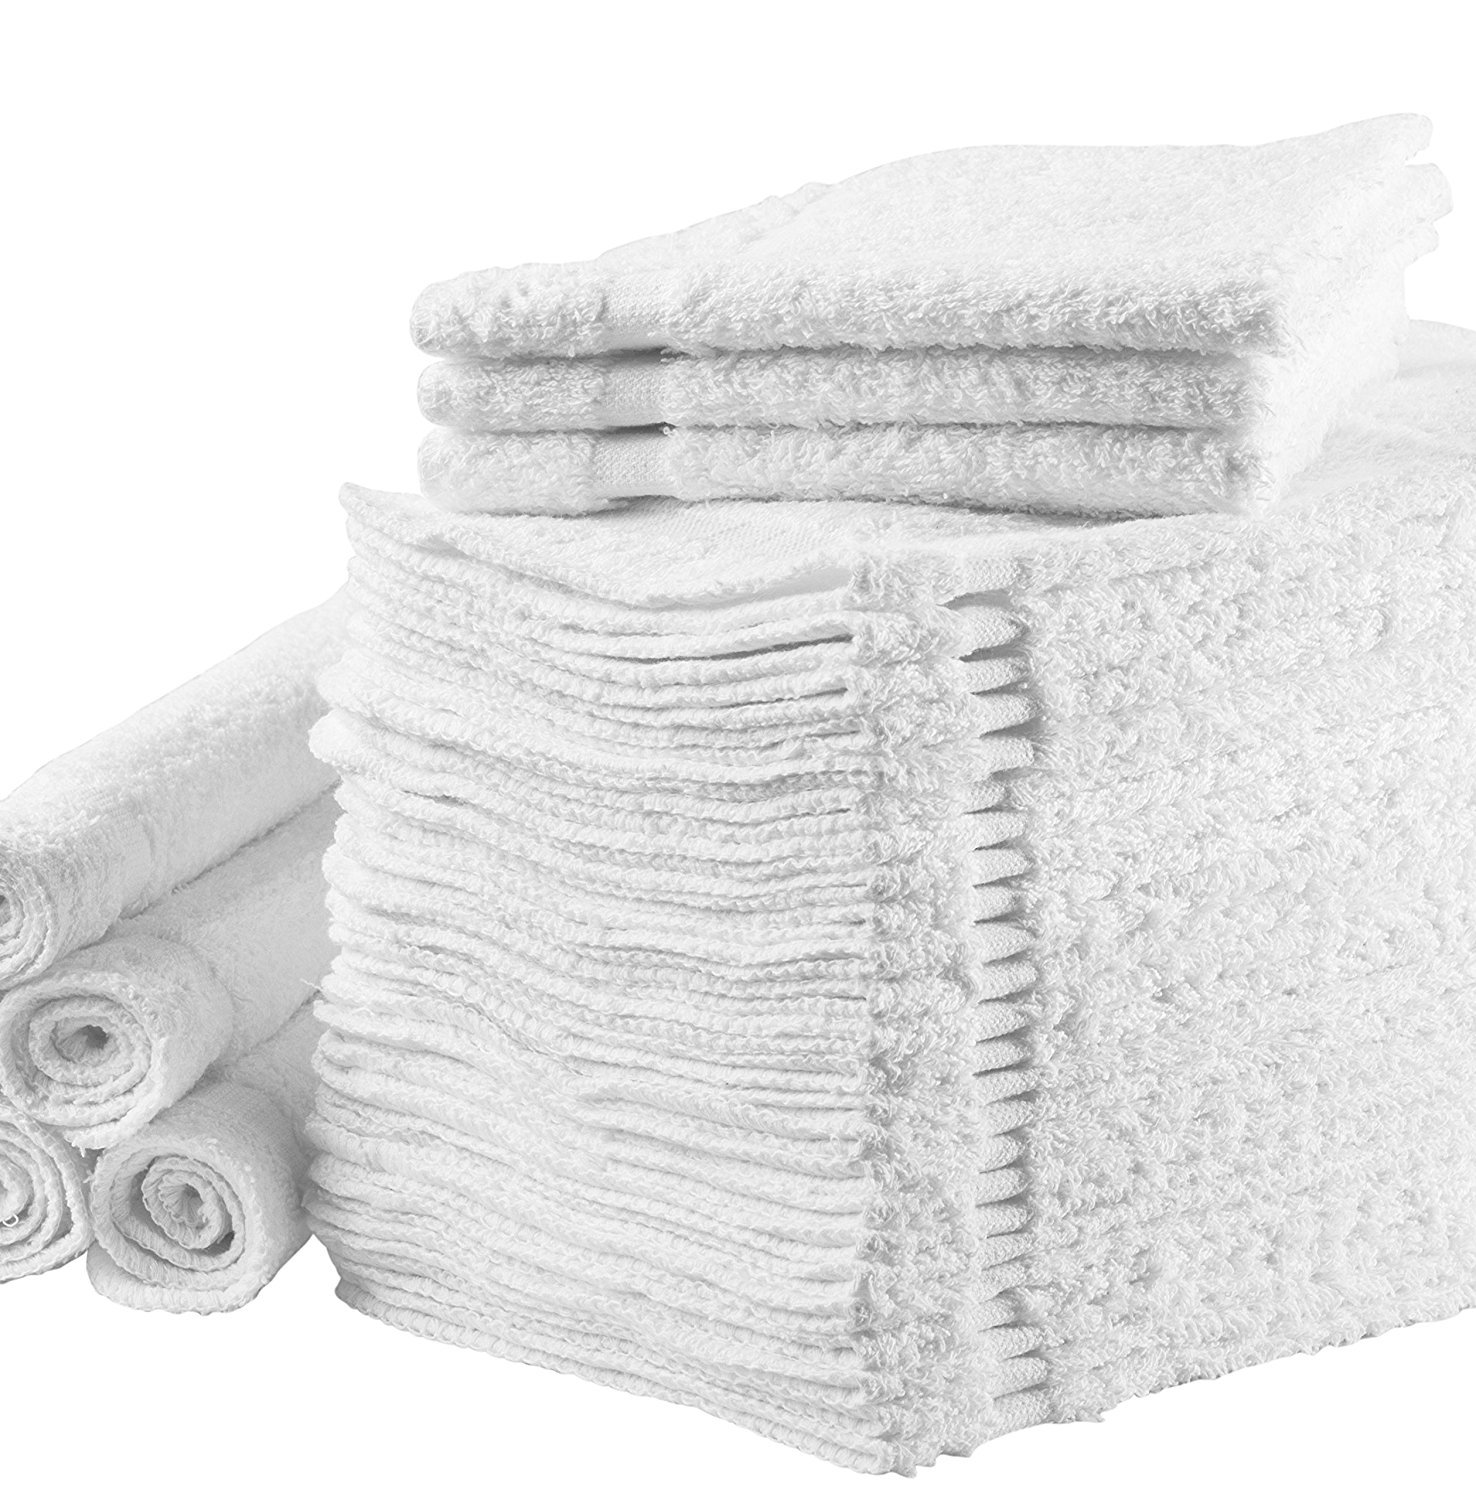 """Washcloths Towel Set (White, Set of 24), Kitchen & Dish Cotton Cloth, Bath and Face Cleansing, Baby Washcloth, Multi-Purpose Soft Cleaning Rags - Hand, Gym, Spa, Sports 12""""X12"""" Towels by OMNI LINENS"""